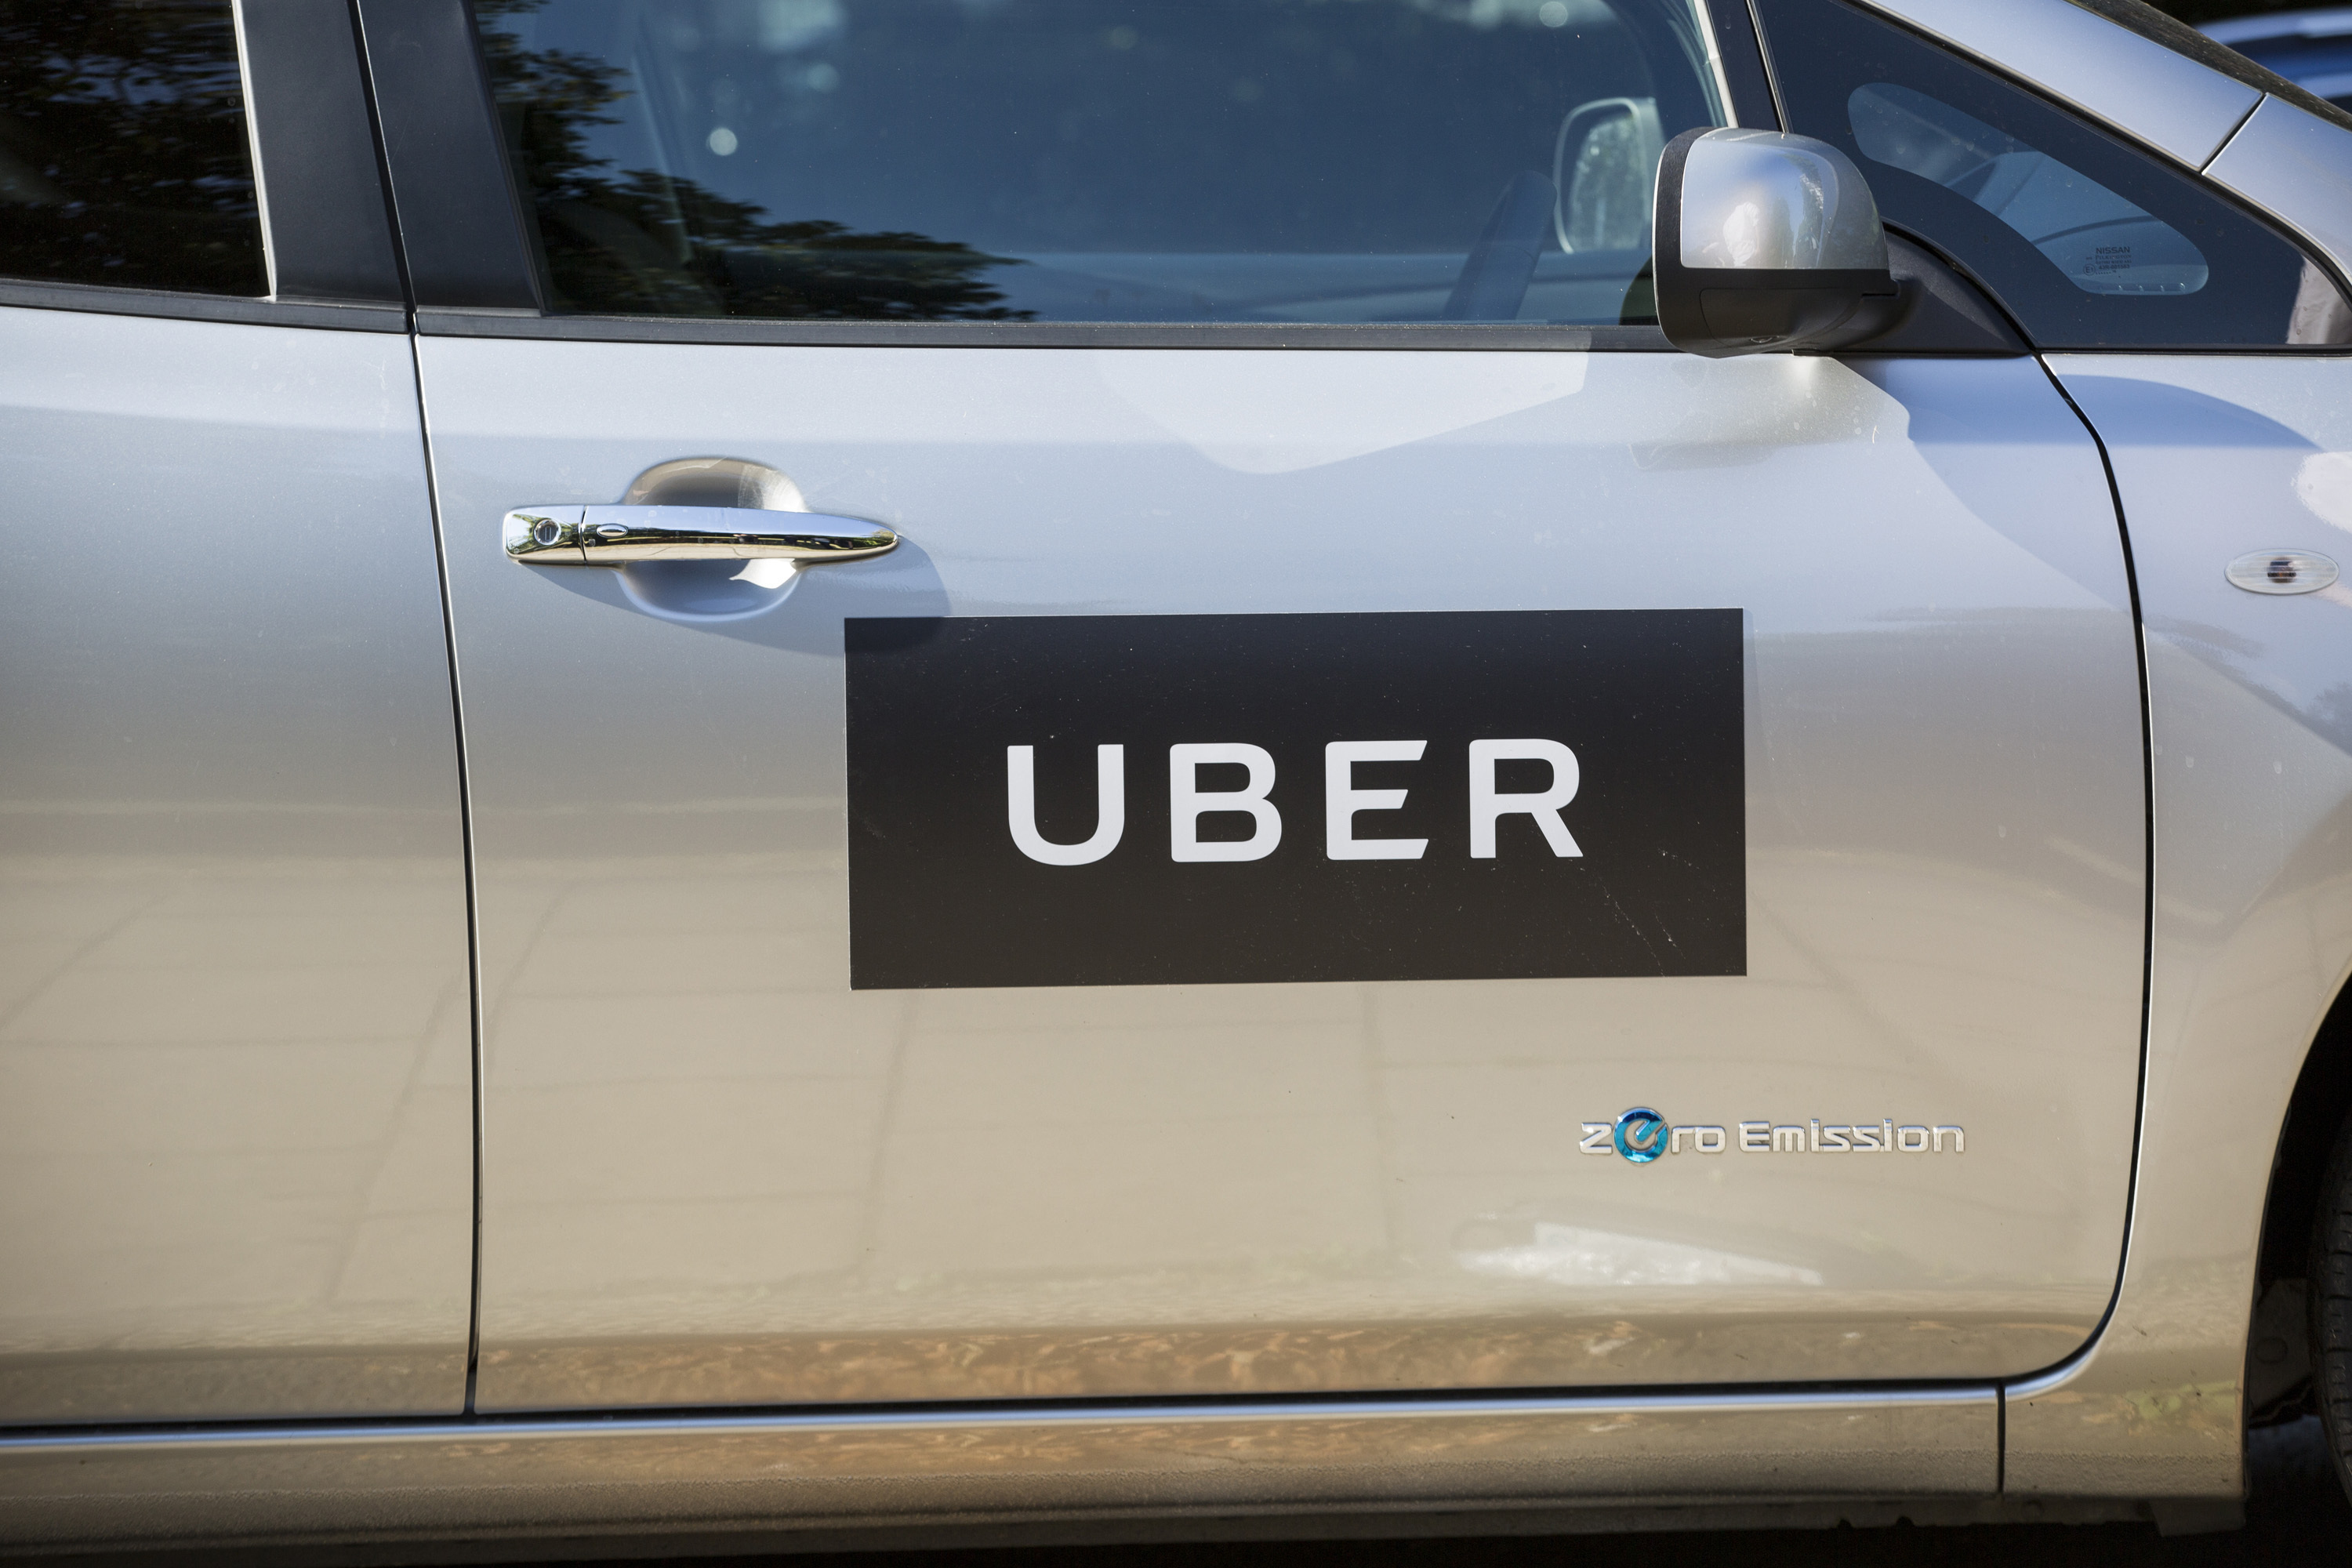 Uber down: Ride-sharing service in chaos after app crashes